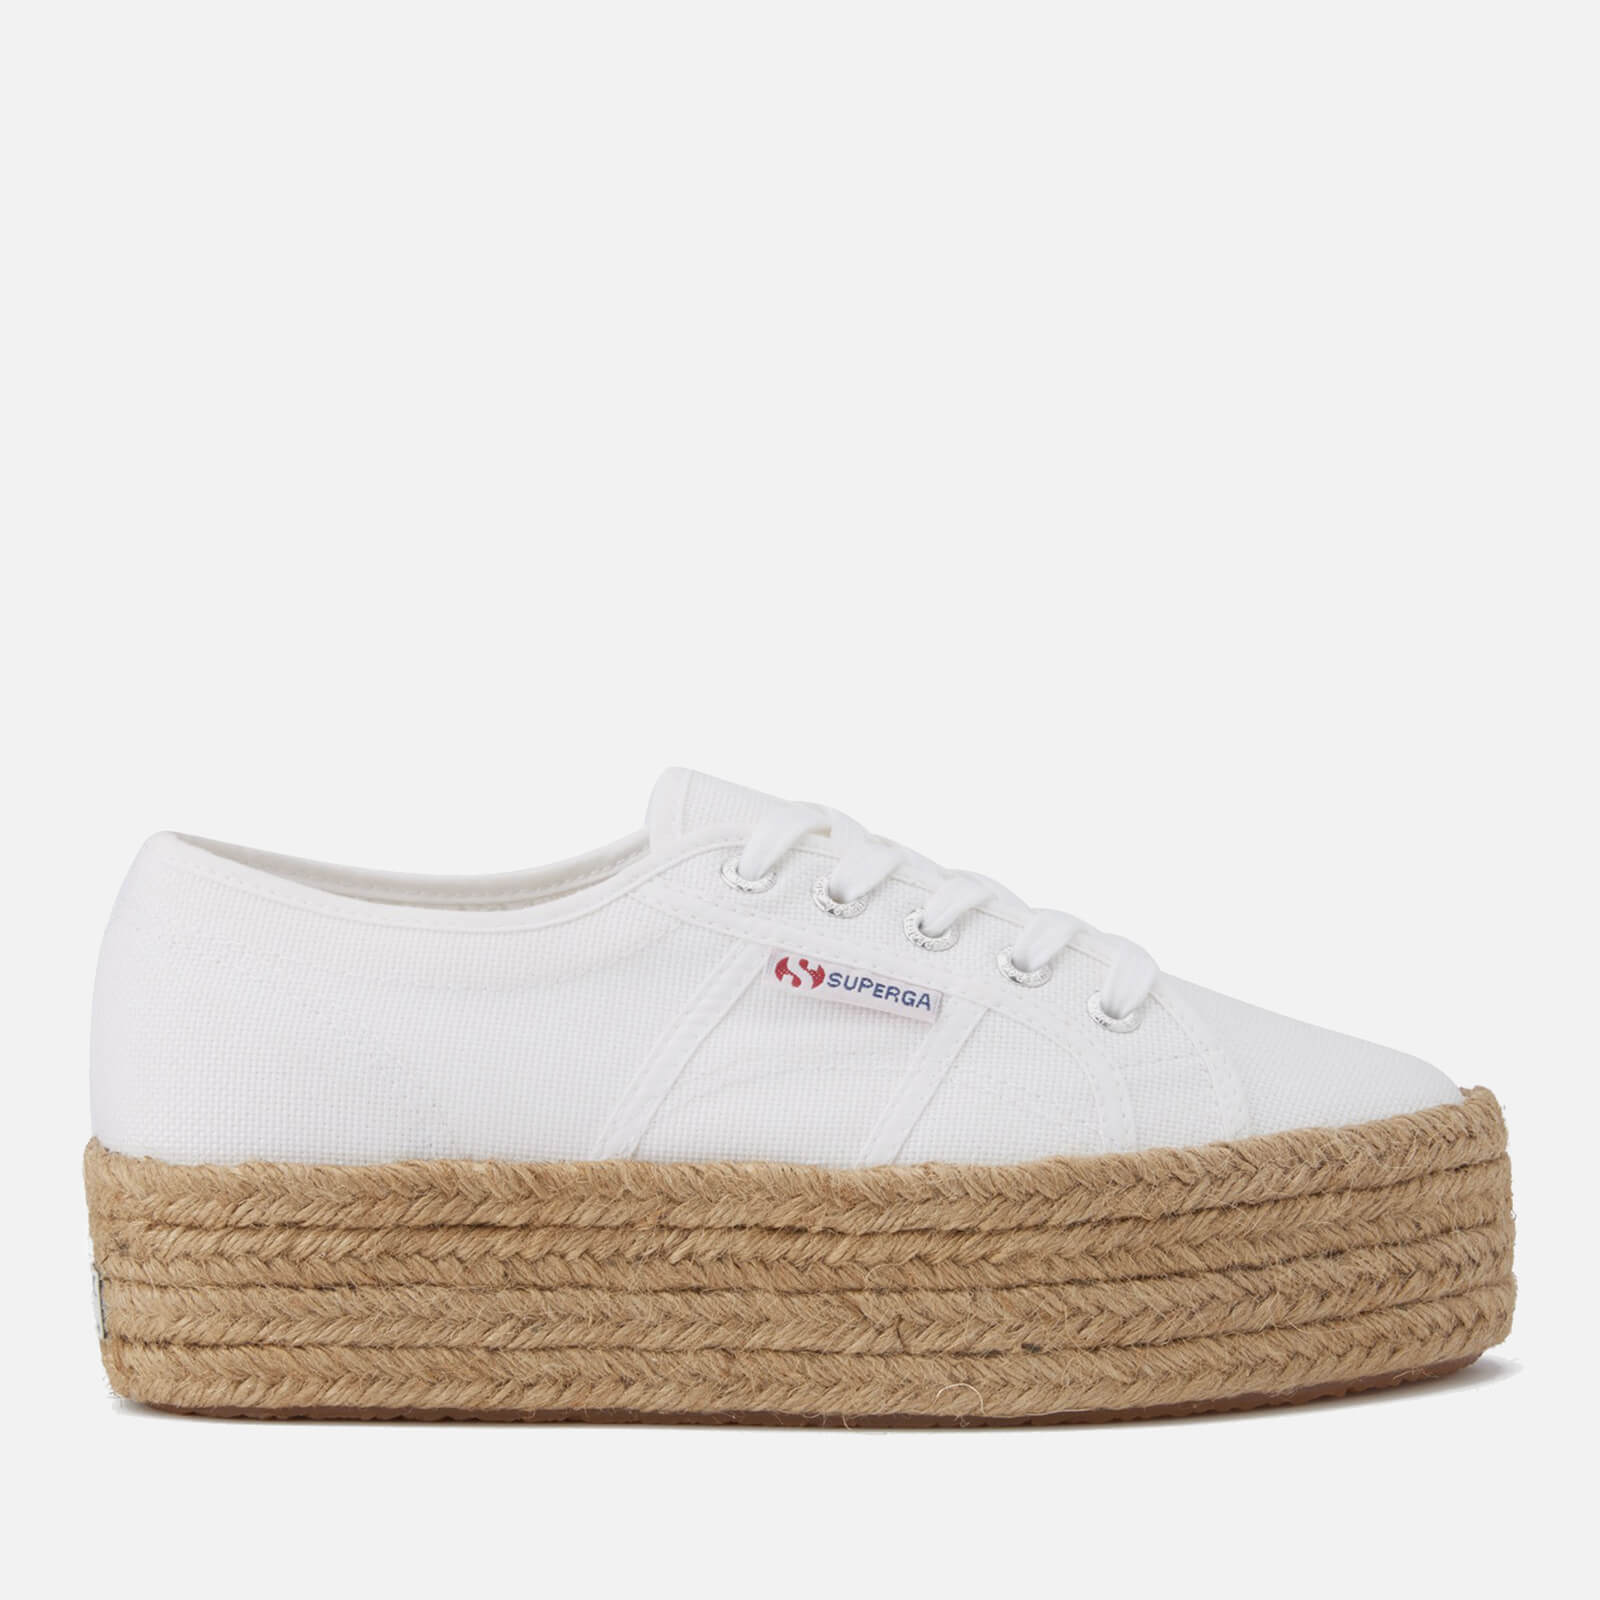 ba72e3638f1b4 Superga Women's 2790 Cotropew Flatform Espadrille Trainers - White - Free  UK Delivery over £50